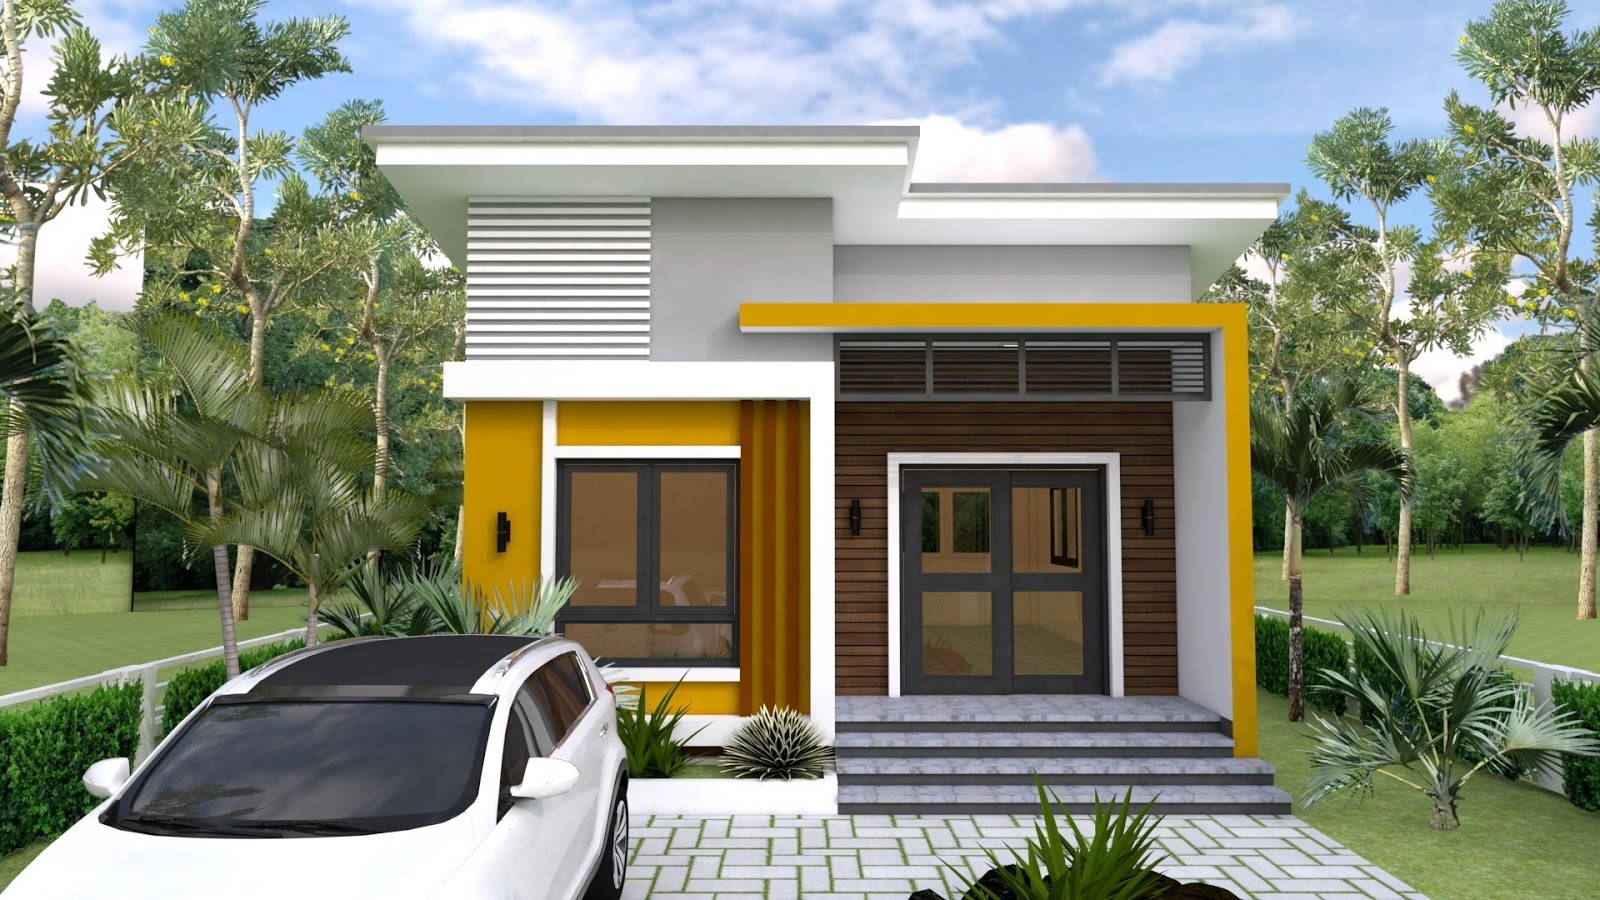 2 Bedroom House Plans Indian Style Best House Plan Design